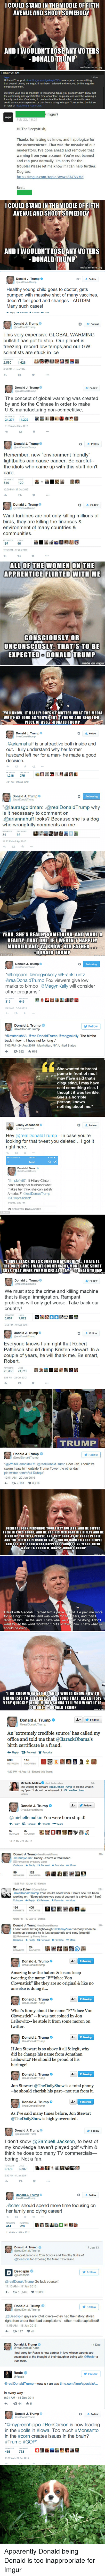 "America, Apparently, and Ass: I COULD STAND IN THEMIDDLE OF FIFTH  AVENUE AND SHOOTSOMEBODY  ANDIWOULDNTLOSEANY VOTERS  DONALD TRUMP  makeameme.org   February 20, 2016  3:40 pm  Hi there! Your post  https://imgur.com/gallery/e715z was reported as something  that doesn't belong on lmgur. It has been reviewed and removed by the Imgurian  moderation team.  We know your post is important to you and we figure you probably didn't know that  the community rules prohibit this type of content, so please consider this warning a  friendly reminder. Continuing to post content that breaks the community rules  could earn you a suspension or ban from sharing to lmgur. You can find the full set  of rules at https llimgur.com/rules   (lmgur)  Feb 22, 16:21  Hi The Sleepylrish,  Thanks for letting us know, and I apologize for  the inconvenience. That was the mistake of our  moderators. I've gone ahead and removed that  warning from your account. You're not banned  and can post normally. I'm sorry for the  trouble! Please let me know if l can help further.  Dog tax:  htt  mgur.com to  Aww18ACVXMd  Best,   I COULD STAND IN THEMIDDLE OF FIFTH  AVENUE AND SHOOTSOMEBODY  ANDIWOULDNTLOSEANY VOTERS  DONALD TRUMP  makeameme.org   a Donald J. Trump  v Follow  areal Donald Trump  Healthy young child goes to doctor, gets  pumped with massive shot of many vaccines,  doesn't feel good and changes AUTISM  Many such cases!  Reply ta Retweet Favorite More   a Donald J. Trump  Follow  @realDonald Trump  This very expensive GLOBAL WARMING  bullshit has got to stop. Our planet is  freezing, record low temps,and our GW  scientists are stuck in ice  RETWEETS  LIKES  2,560  1,626  8:39 PM 1 Jan 2014   Donald J. Trump  Follow  @realDonald The concept of global warming was created  by and for the Chinese in order to make  U.S. manufacturing non-competitive.  ETS LIKES  24,274  14,202  11:15 AM 6 Nov 2012   Donald J. Trump  Follow  CarealDonaldTrump  Remember, new ""environment friendly  lightbulbs can cause cancer. Be careful--  the idiots who came up with this stuff don't  care  RETWEETS LIKES  516  120  12:39 PM 17 Oct 2012   Donald J. Trump  o  Follow  arealDonald Trump  Wind turbines are not only killing millions of  birds, they are killing the finances &  environment of many countries &  communities.  RETWEETS LIKES  197  46  12:32 PM 17 Oct 2012   ALL OF THE WOMEN ON THE  APPRENTICE FLIR TED WITH ME  CONSCIOUSLY OR  UNCONSCIOSLY. THAT'S TO BE  EXPECTED DONALD TRUMP  made on imgur   ""YOU KNOW, IT REALLY DOESN'T MATTER WHAT THE MEDIA  WRITE AS LONG AS YOU'VE GOTA YOUNG AND BEAUTIFUL  PIECE OF ASS. DONALD TRUMP   Donald J. Trump  Follow  @realDonald'Trump  @ariannahuff is unattractive both inside and  out. fully understand why her former  husband left her for a man- he made a good  decision.  RETWEETS  FAVORITES  SGP  1.218  275  7:54 AM 28 Aug 2012   Donald J. Trump  Following  @real Donald Trump  @laurasgoldman  realDonald Trump why  is it necessary to comment on  @ariannahuff looks? Because she is a dog  who wrongfully comments on me  FAVORITES  66  11:22 PM-6 Apr 2015   YEAH, SHE'S REALLY SOMETHING. AND WHAT A  BEAUTY. THAT ONE. IFI WERENT HAPPILY  MARRIED AND YA KNOW. HER FATHER  o o o  DONALD TRUMP  instagram   Donald J. Trump  Following  areal Donald Trump  @timicam: megynkelly @FrankLuntz  @realDonald Trump Fox viewers give low  marks to bimbo  MegynKelly will consider  other programs!""  RETwEETs 313  649  3:24 AM 7 Aug 2015   Donald J. Trump  Follow  @realDonald Trump  ""@mstanish53: @realDonaldTrump @megynkelly The bimbo  back in town. I hope not for long  7:02 PM 24 Aug 2015 Manhattan, NY, United States  252 615   She wanted to breast  pump in front of me.  I  may have said that's  disgusting, may have  said something else.  thought it was terrible.  She's a horrible  person, knows  nothing about me.""   Lenny Jacobson  Follow  Lennyjacobson  Hey arealDonald Trump In case you're  looking for that tweet you deleted l got it  right here.  5:50 PM  T 2996  CA  Tweet  Donald J. Trump  @real Donald Trump  ""@mplefty 67: If Hillary Clinton  can't satisfy her husband what  makes her think she can satisfy  America?  real DonaldTrump  #20  4/16/15, 5:22 PM  100  RETWEETS  113  FAVORITES  C Twitter   ""I HAVE BLACK GUYS COUNTING MY MONEY  I HATE IT  THE ONLY GUYS I WANT COUNTING MY MONEY ARE SHORT  GUYS THAT WEAR YARMULKES ALADAYPGDONALD TRUMP   a Donald J. Trump  Follow  @realDonald Trump  We must stop the crime and killing machine  that is illegal immigration. Rampant  problems will only get worse. Take back our  country!  RETWEETS  LIKES  3,667 7,672  5:58 PM 10 Aug 2015   a Donald J. Trump  Follow  @realDonald Trump  Everyone knows I am right that Robert  Pattinson should dump Kristen Stewart. In a  couple of years, he Will thank me. Be Smart,  Robert.  RETWEETS LIKES  20,368 21,712  5:48 PM 22 Oct 2012   LAM  TRUMP   Follow  Donald J. Trump  arealDonald Trump  ""@White Genocide TM: @realDonaldTrump Poor Jeb. I could've  sworn I saw him outside Trump Tower the other day!  pic.twitter.com/e5uLRubqla""  10:51 AM 22 Jan 2016  t 4,181  8.919   IGENERAL JOHN PERSHINGI TOOK FIFTY BULLETS, AND HE DIPPED  THEM IN PIG'S BLOOD, AND HE HAD HIS MEN LOAD HIS RIFLES AND HE  LINED UP THE FIFTY  PEOPLE, AND THEY SHOT 49 OF THOSE PEOPLE  AND THE FIFTIETH PERSON HE SAID YOU GO BACK TO YOUR PEOPLE  AND YOU TELL THEM WHAT HAPPENED, AND FOR 25 YEARS THERE  WASN'T A PROBLEM, OKAYP- DONALD TRUMP  made on imgur   dealt with Gaddafi. I rented him a piece of land. He paid me more  for one night than the land was worth for two years, and then l  didn't let him use the land. That's what we should be doing. I don't  want to  use the word ""screwed,"" but I screwed him. That's what we  should be  doing   ""I DO KNOW WHAT TO DO AND  I WOULD KNOWAHOW TO  BRING ISIS TO THE TABLE OR BEYOND THAT, DEFEAT ISIS  VERY QUICKLY. AND AM NOT GONNA TELL YOU WHAT IT is  TONIGHT  DONALD TRUMP  made on inngur   L* Follow  as Donald J. Trump  GrealDonaldTrump  An ""extremely credible source' has called my  office and told me that @BarackObama's  birth certificate is a fraud.  Reply  t Retweet  Favorite  115  690  RETWEETS FAVORITES  4:23 PM Aug 12 Embed this Tweet   Michelle Malkin  amichellemalkin  24h  Still waiting for coward @realDonaldTrump to tell me what in  my ""past"" should be ashamed of. #SmearMerchant  Details  as Donald J. Trump  Follow  @realDonald Trump  @michellemalkin You were born stupid!  Reply t Retweet  Favorite More  20  69  RETWEETS FAVORITES  10:10 AM 22 Mar 13   Donald J. Trump  realDonaldTrump  22h  .@Danny Zuker Danny--You're a total loser!  13 Retweeted by Danny Zuker  Collapse Reply t Retweet Favorite More  99  129  RETWEETS FAVORITES  12:26 PM 12 Jun 13. Details  Danny Zuker  @Danny Zuker  22h  working on: ""Every picture you post of yourself is a d**k pic."" See?  Collapse Reply ta Retweet Favorite More  400  164  RETWEETS FAVORITES  12:28 PM 12 Jun 13. Details  Donald J. Trump  @realDonald Trump  I can't resist hitting lightweight @DannyZuker verbally when he  starts up because he is just.so pathetic and easy (stupid)!  ti Retweeted by Danny Zuker  Collapse Reply t Retweet Favorite More  37  24  RETWEETS FAVORITES   Following  Donald J. Trump  @realDonaldTrump  Amazing how the haters & losers keep  tweeting the name ace Von  Clownstick"" like they are so original & like no  one else is doing it...  Donald J. Trump  Following  @realDonald Trump  What's funny about the name ""F**kface Von  Clownstick"" it was not coined by Jon  Leibowitz-- he stole it from some moron on  twitter.  Donald J. Trump  Following  @realDonaldTrump  If Jon Stewart is so above it all & legit, why  did he change his name from Jonathan  Leibowitz? He should be proud of his  heritage!  as Donald J. Trump  Following  @realDonaldTrump  Jon Stewart @TheDailyShow is a total phony  he should cherish his past-not run from it.  as Donald J. Trump  Following  @real DonaldTrump  As I've said many times before, Jon Stewart  @The Daily Show is highly overrated   a Donald J. Trump  Follow  CarealDonaldTrump  I don't know @Samuel LJackson, to best of  my knowledge haven't played golf w/him &  think he does too many TV commercials-  boring. Not a fan.  RETWEETS LIKES  3,176 6,587  9:42 AM 5 Jan 2016   Donald J. Trump  Follow  @realDonaldTrump  @cher should spend more time focusing on  her family and dying career!  RETWEETS  FAVORITES  414  228  11:49 AM 13 Nov 2012   Donald J. Trump  17 Jan 13  CarealDonaldTrump  Congratulations to Tom Scocca and Timothy Burke of  @Deadspin for exposing the Manti Te'o fiasco.  D Deadspin  @Deadspin  Follow  arealDonald Trump Go fuck yourself  11:15 AM 17 Jan 2013  h 10,546 10,890  Donald J. Trump  Follow  @realDonald Trump  @Deadspin guys are total losers-they had their story stolen  right from under their bad complexions  other media capitalized  11:59 AM 18 Jan 2013  tR, 117 44.   Donald J. Trump  14 Dec  @real DonaldTrump  I feel sorry for Rosie 's new partner in love whose parents are  devastated at the thought of their daughter being with  Rosie  true loser  Rosie  Follow  @Rosie  @realDonald Trump wow u r an ass time.com/time/specials/  in every way  9:21 AM 14 Dec 2011  44 5   Donald J. Trump  Follow  @real Donald Trump  ""@mygreenhippo #BenCarson is now leading  in the #polls in HIowa. Too much thMonsanto  in the #corn creates issues in the brain?  Trump thGOP""  RETWEETS FAVORITES  733  455  11:57 AM 22 Oct 2015   A Apparently Donald being Donald is too inappropriate for Imgur"